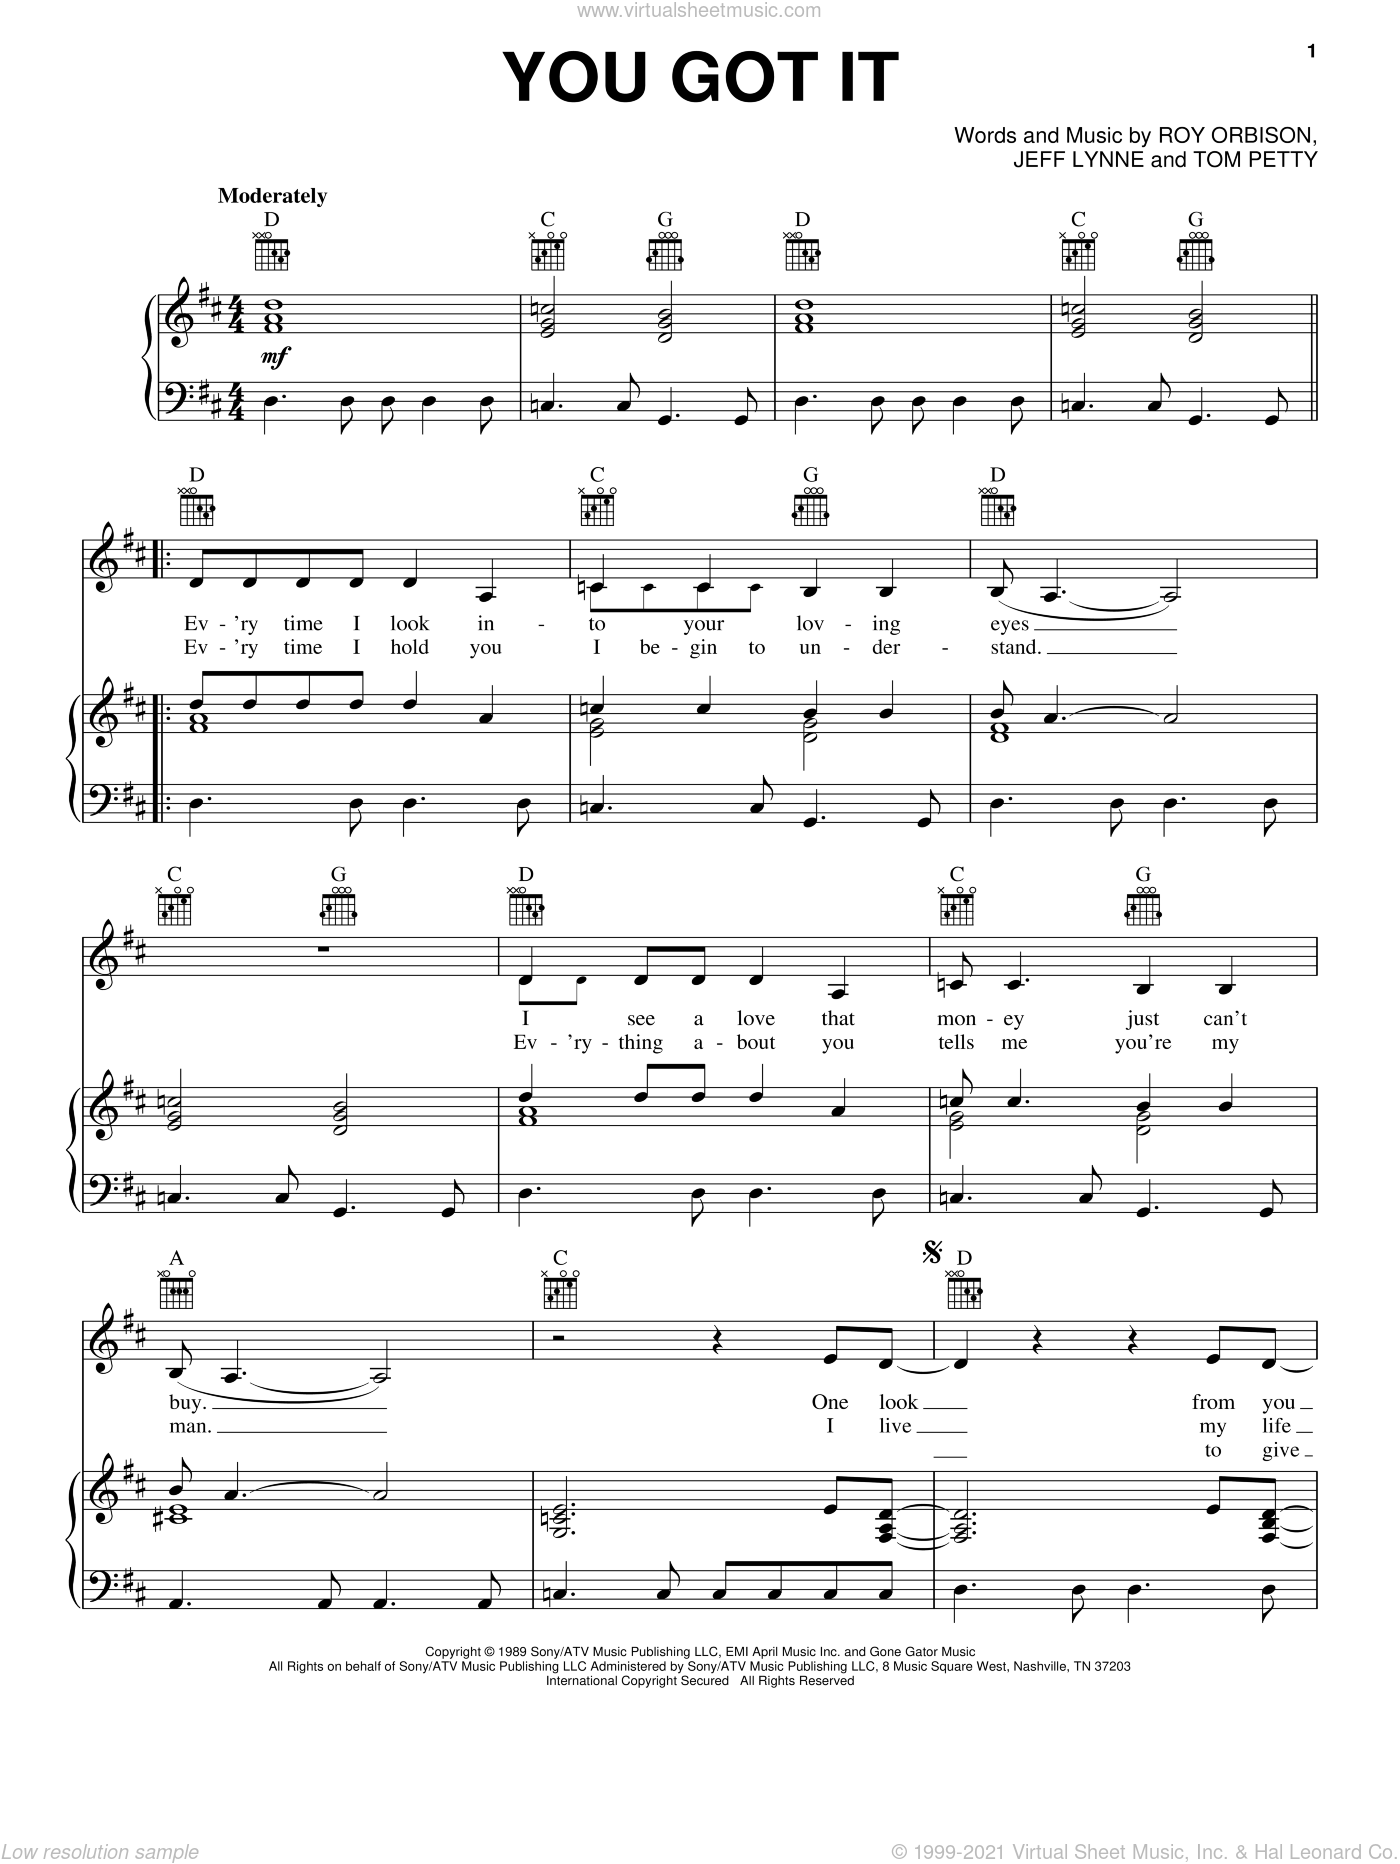 You Got It sheet music for voice, piano or guitar by Tom Petty, Bonnie Raitt, Jeff Lynne and Roy Orbison. Score Image Preview.